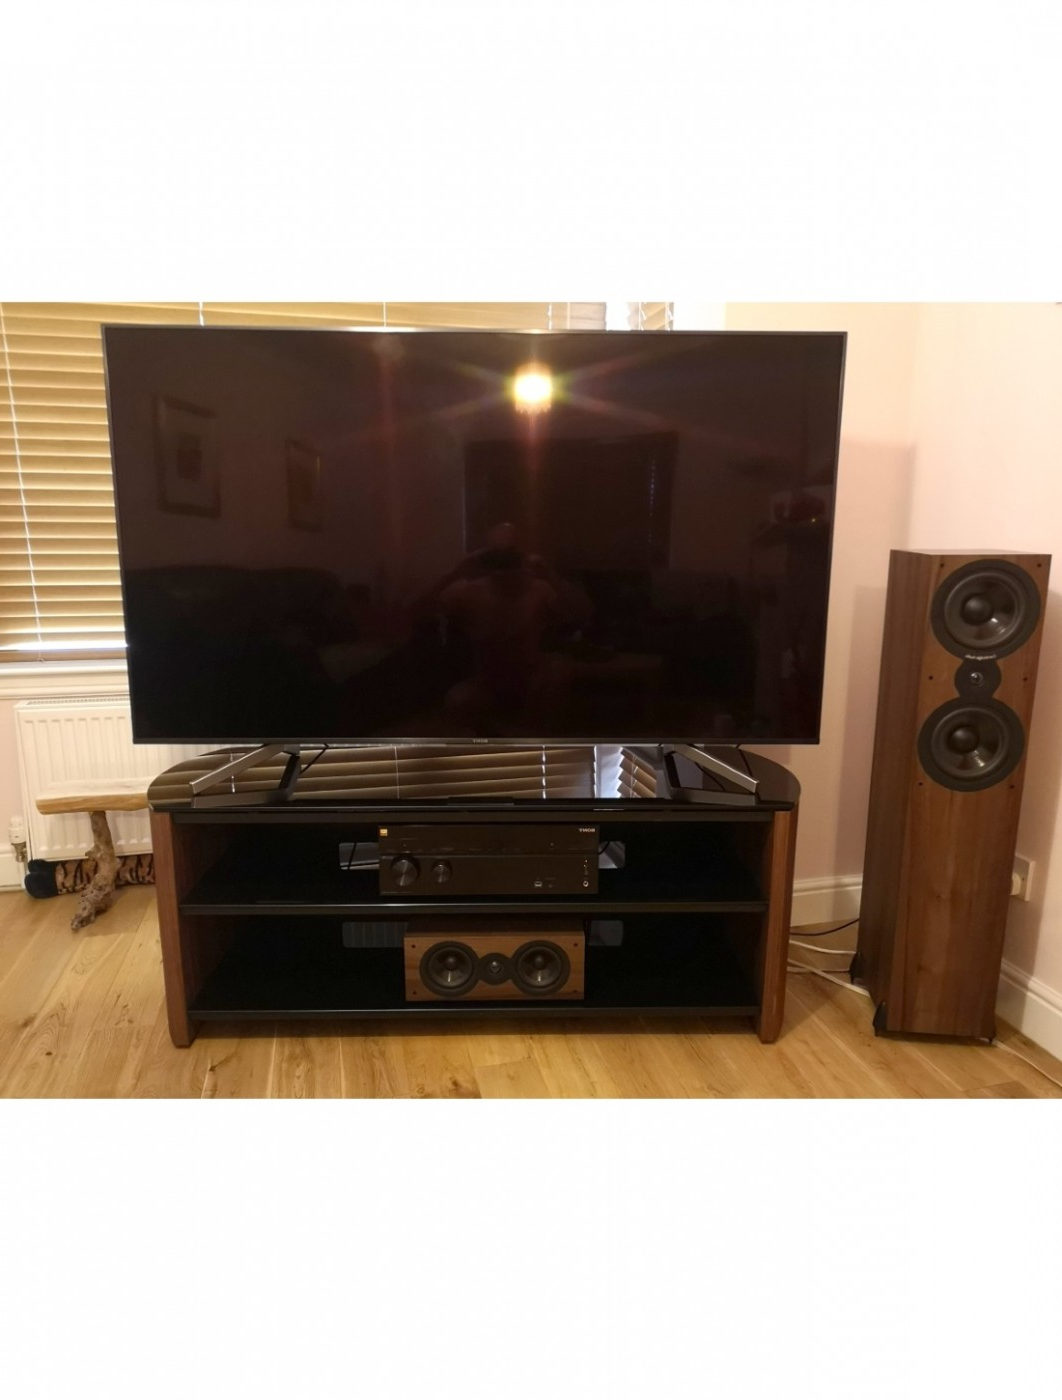 Tv Stands – Alphason Fw1350 W/b Finewoods Tv Stand | 121 Pertaining To 57'' Tv Stands With Open Glass Shelves Gray & Black Finsh (View 12 of 20)